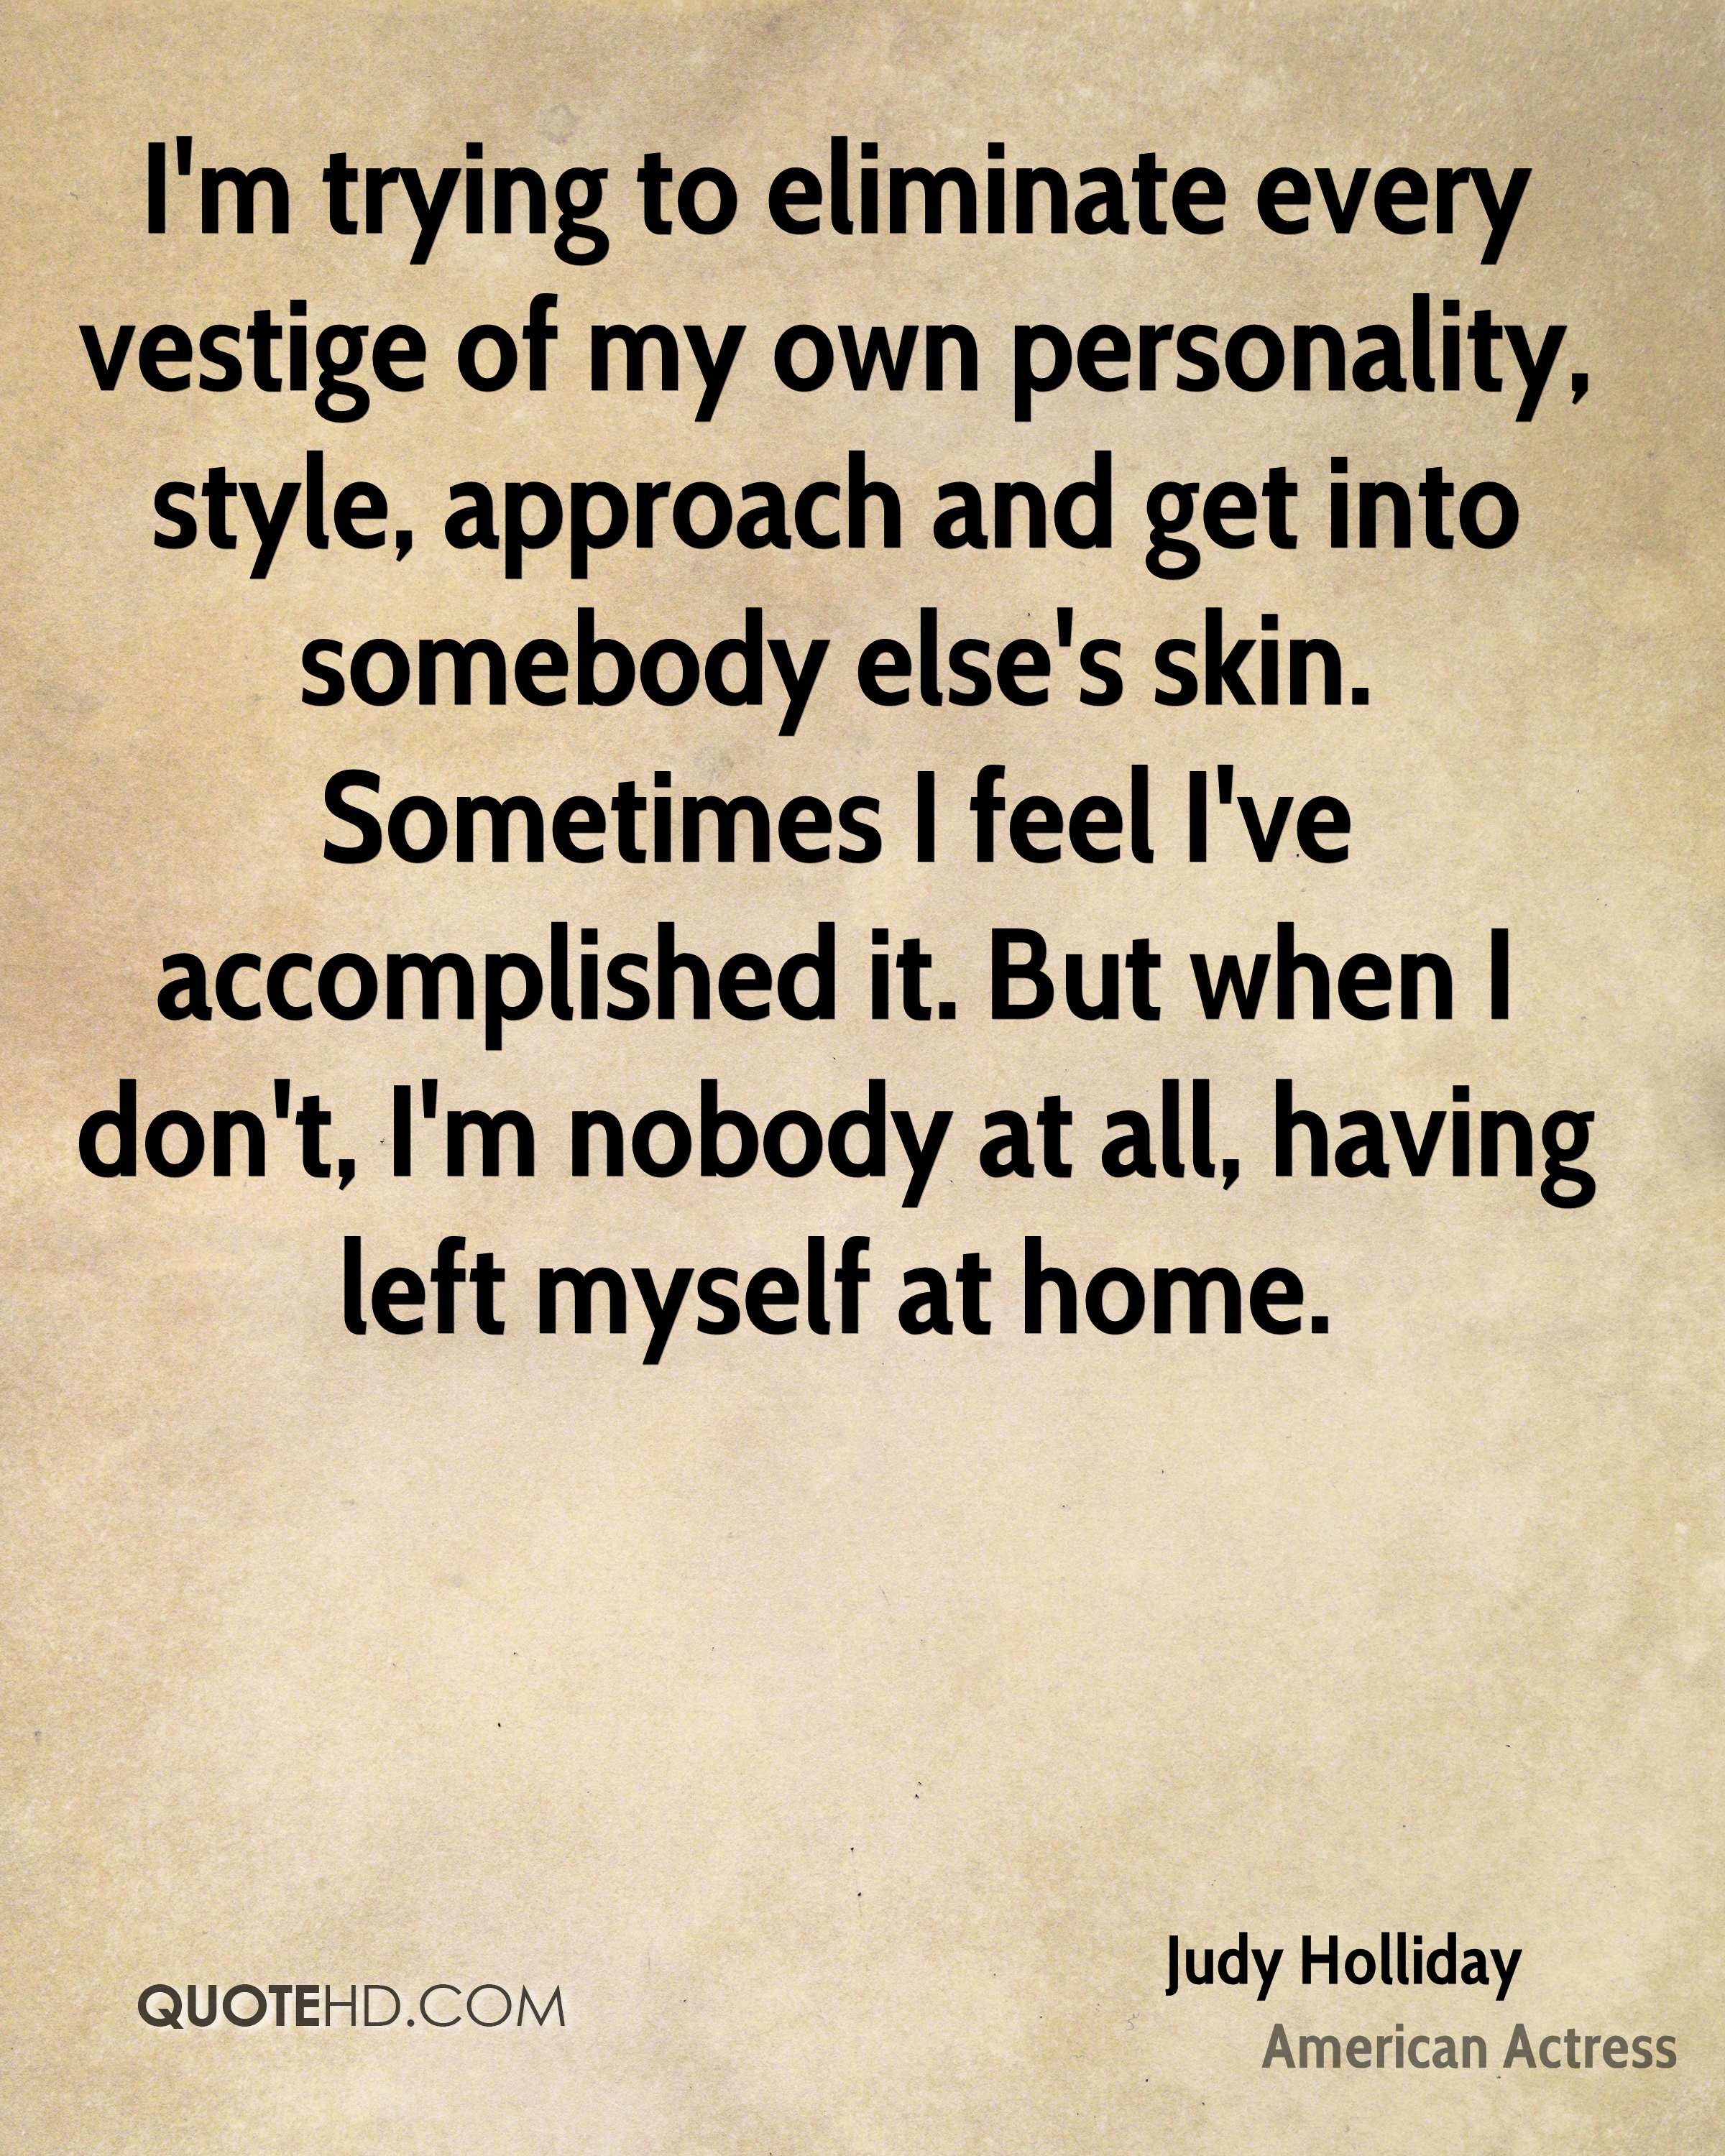 I'm trying to eliminate every vestige of my own personality, style, approach and get into somebody else's skin. Sometimes I feel I've accomplished it. But when I don't, I'm nobody at all, having left myself at home.